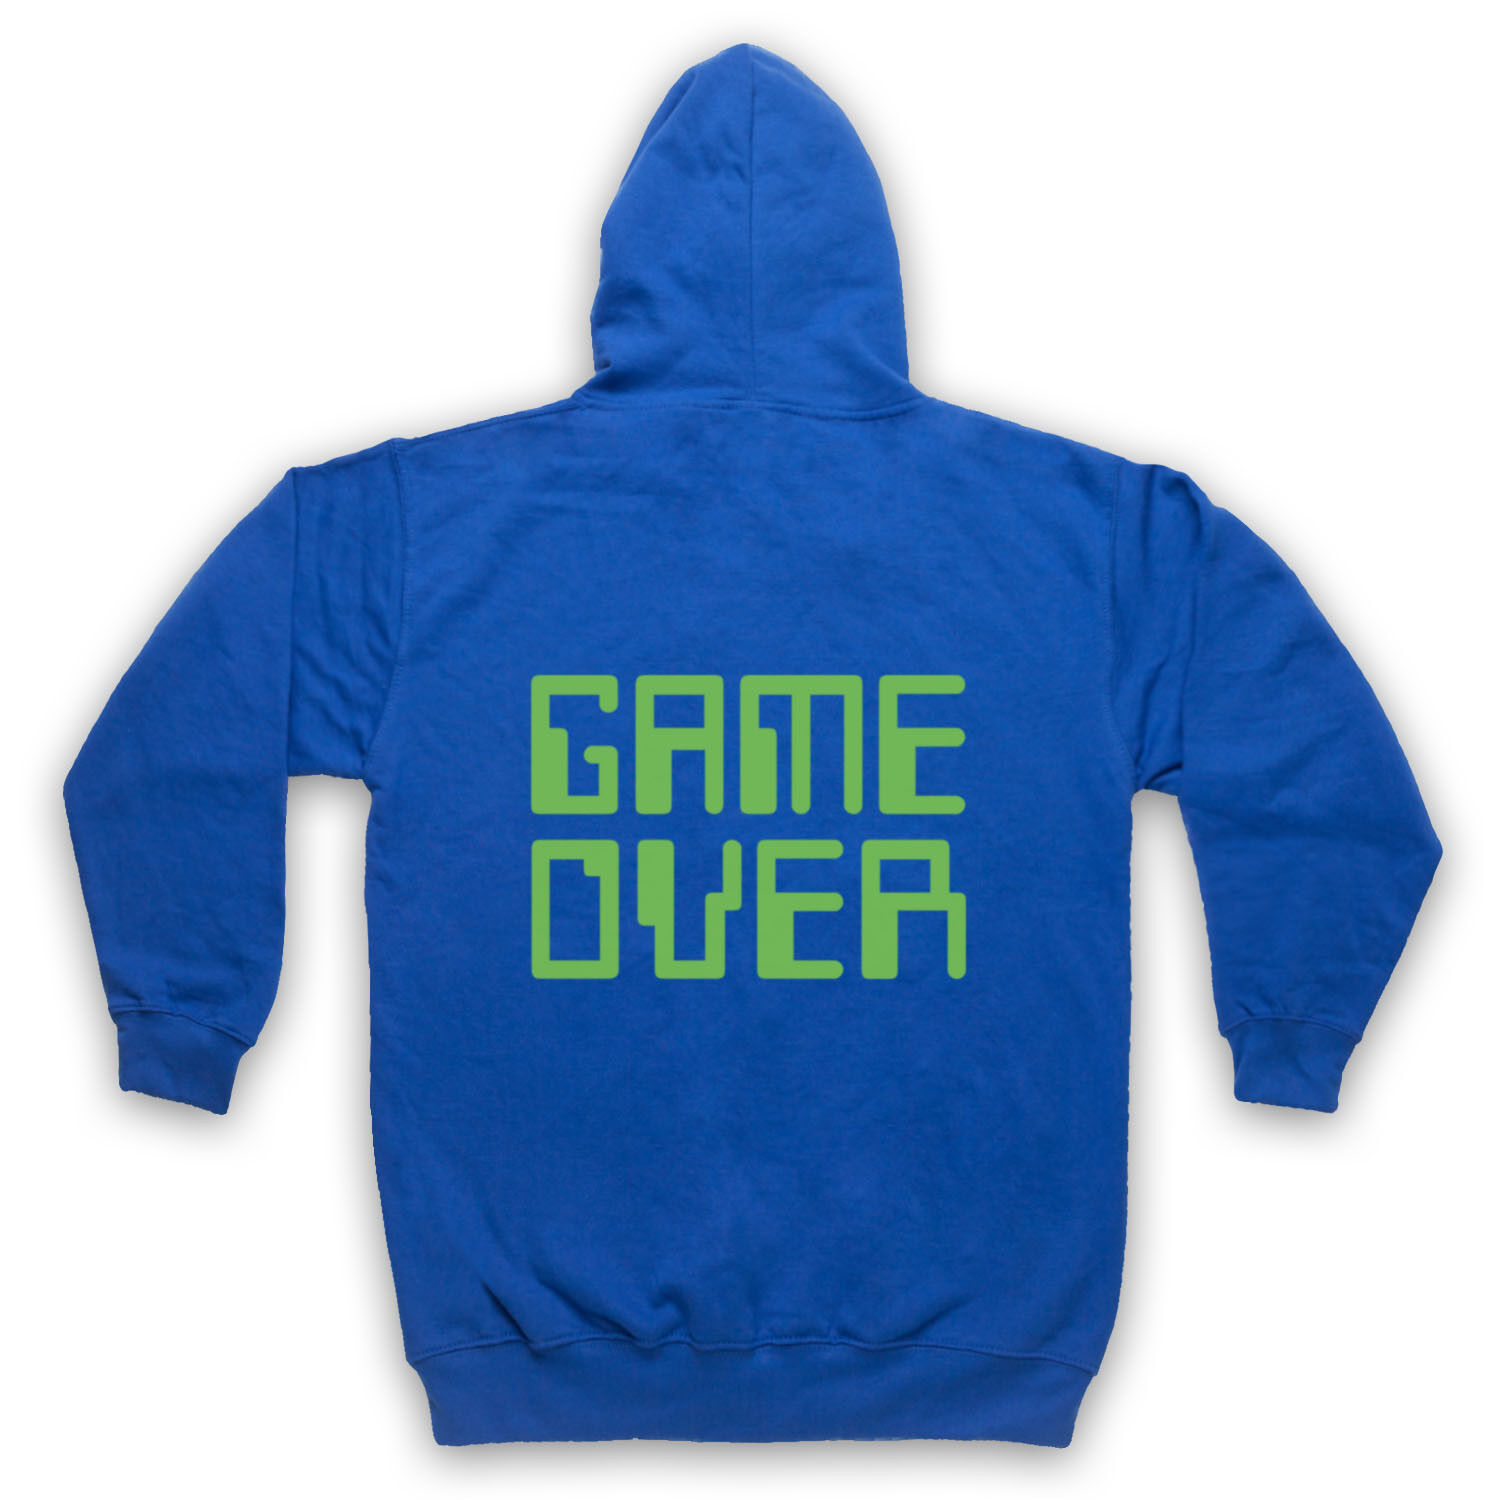 GAME OVER HIPSTER RETRO SLOGAN COMPUTER END LIFE GEEK ADULTS ADULTS ADULTS KIDS HOODIE 85a4ec